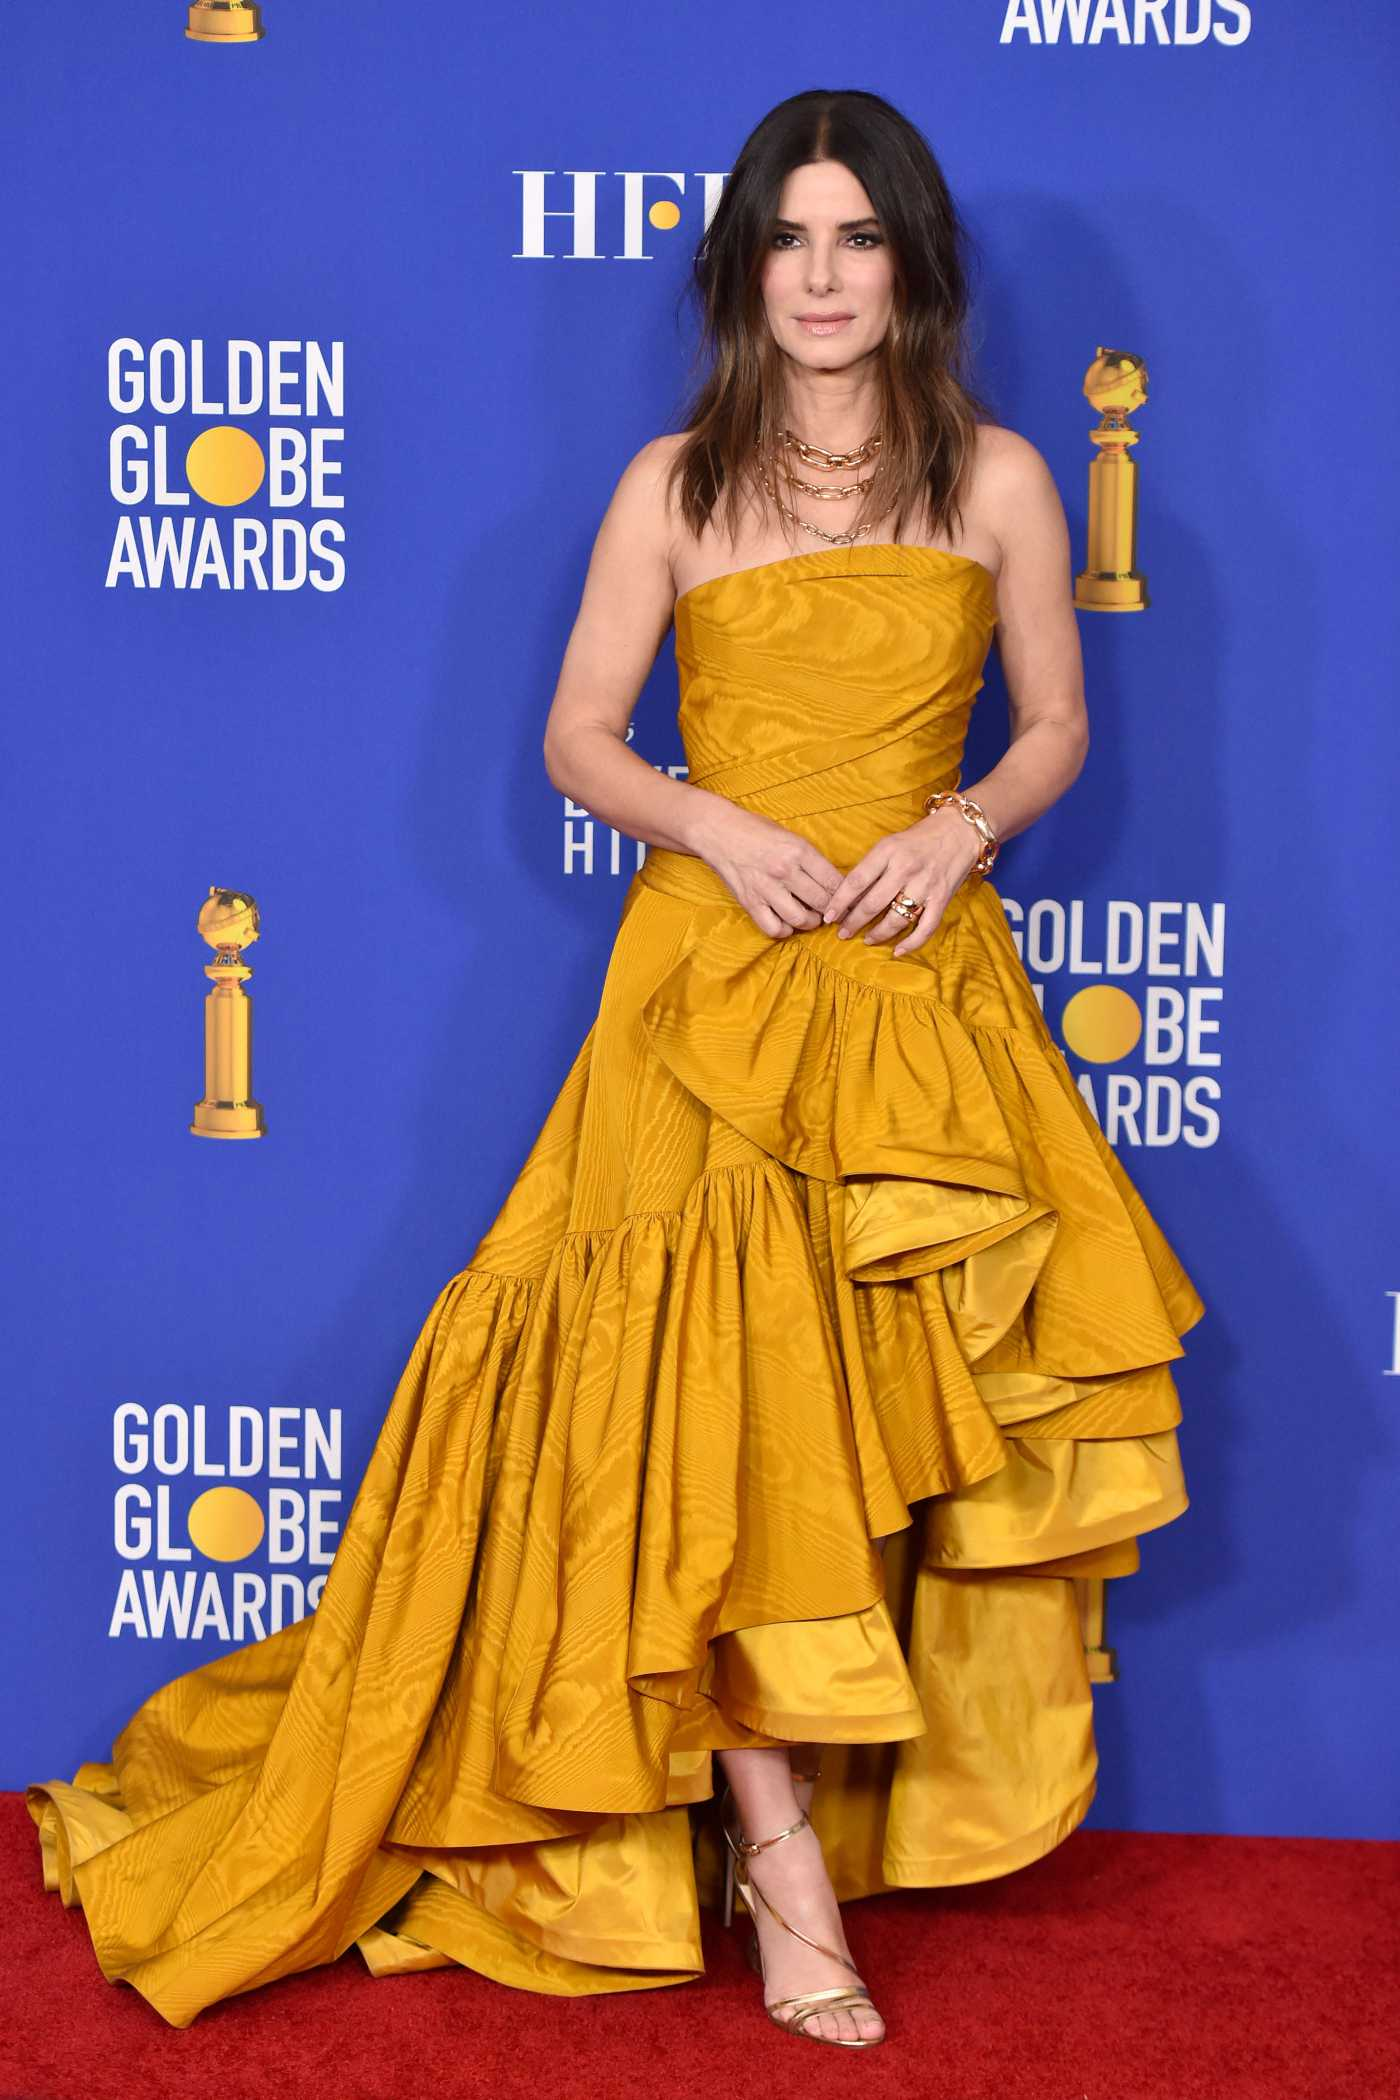 Sandra Bullock Attends the 77th Annual Golden Globe Awards at the Beverly Hilton Hotel in Beverly Hills 01/05/2020